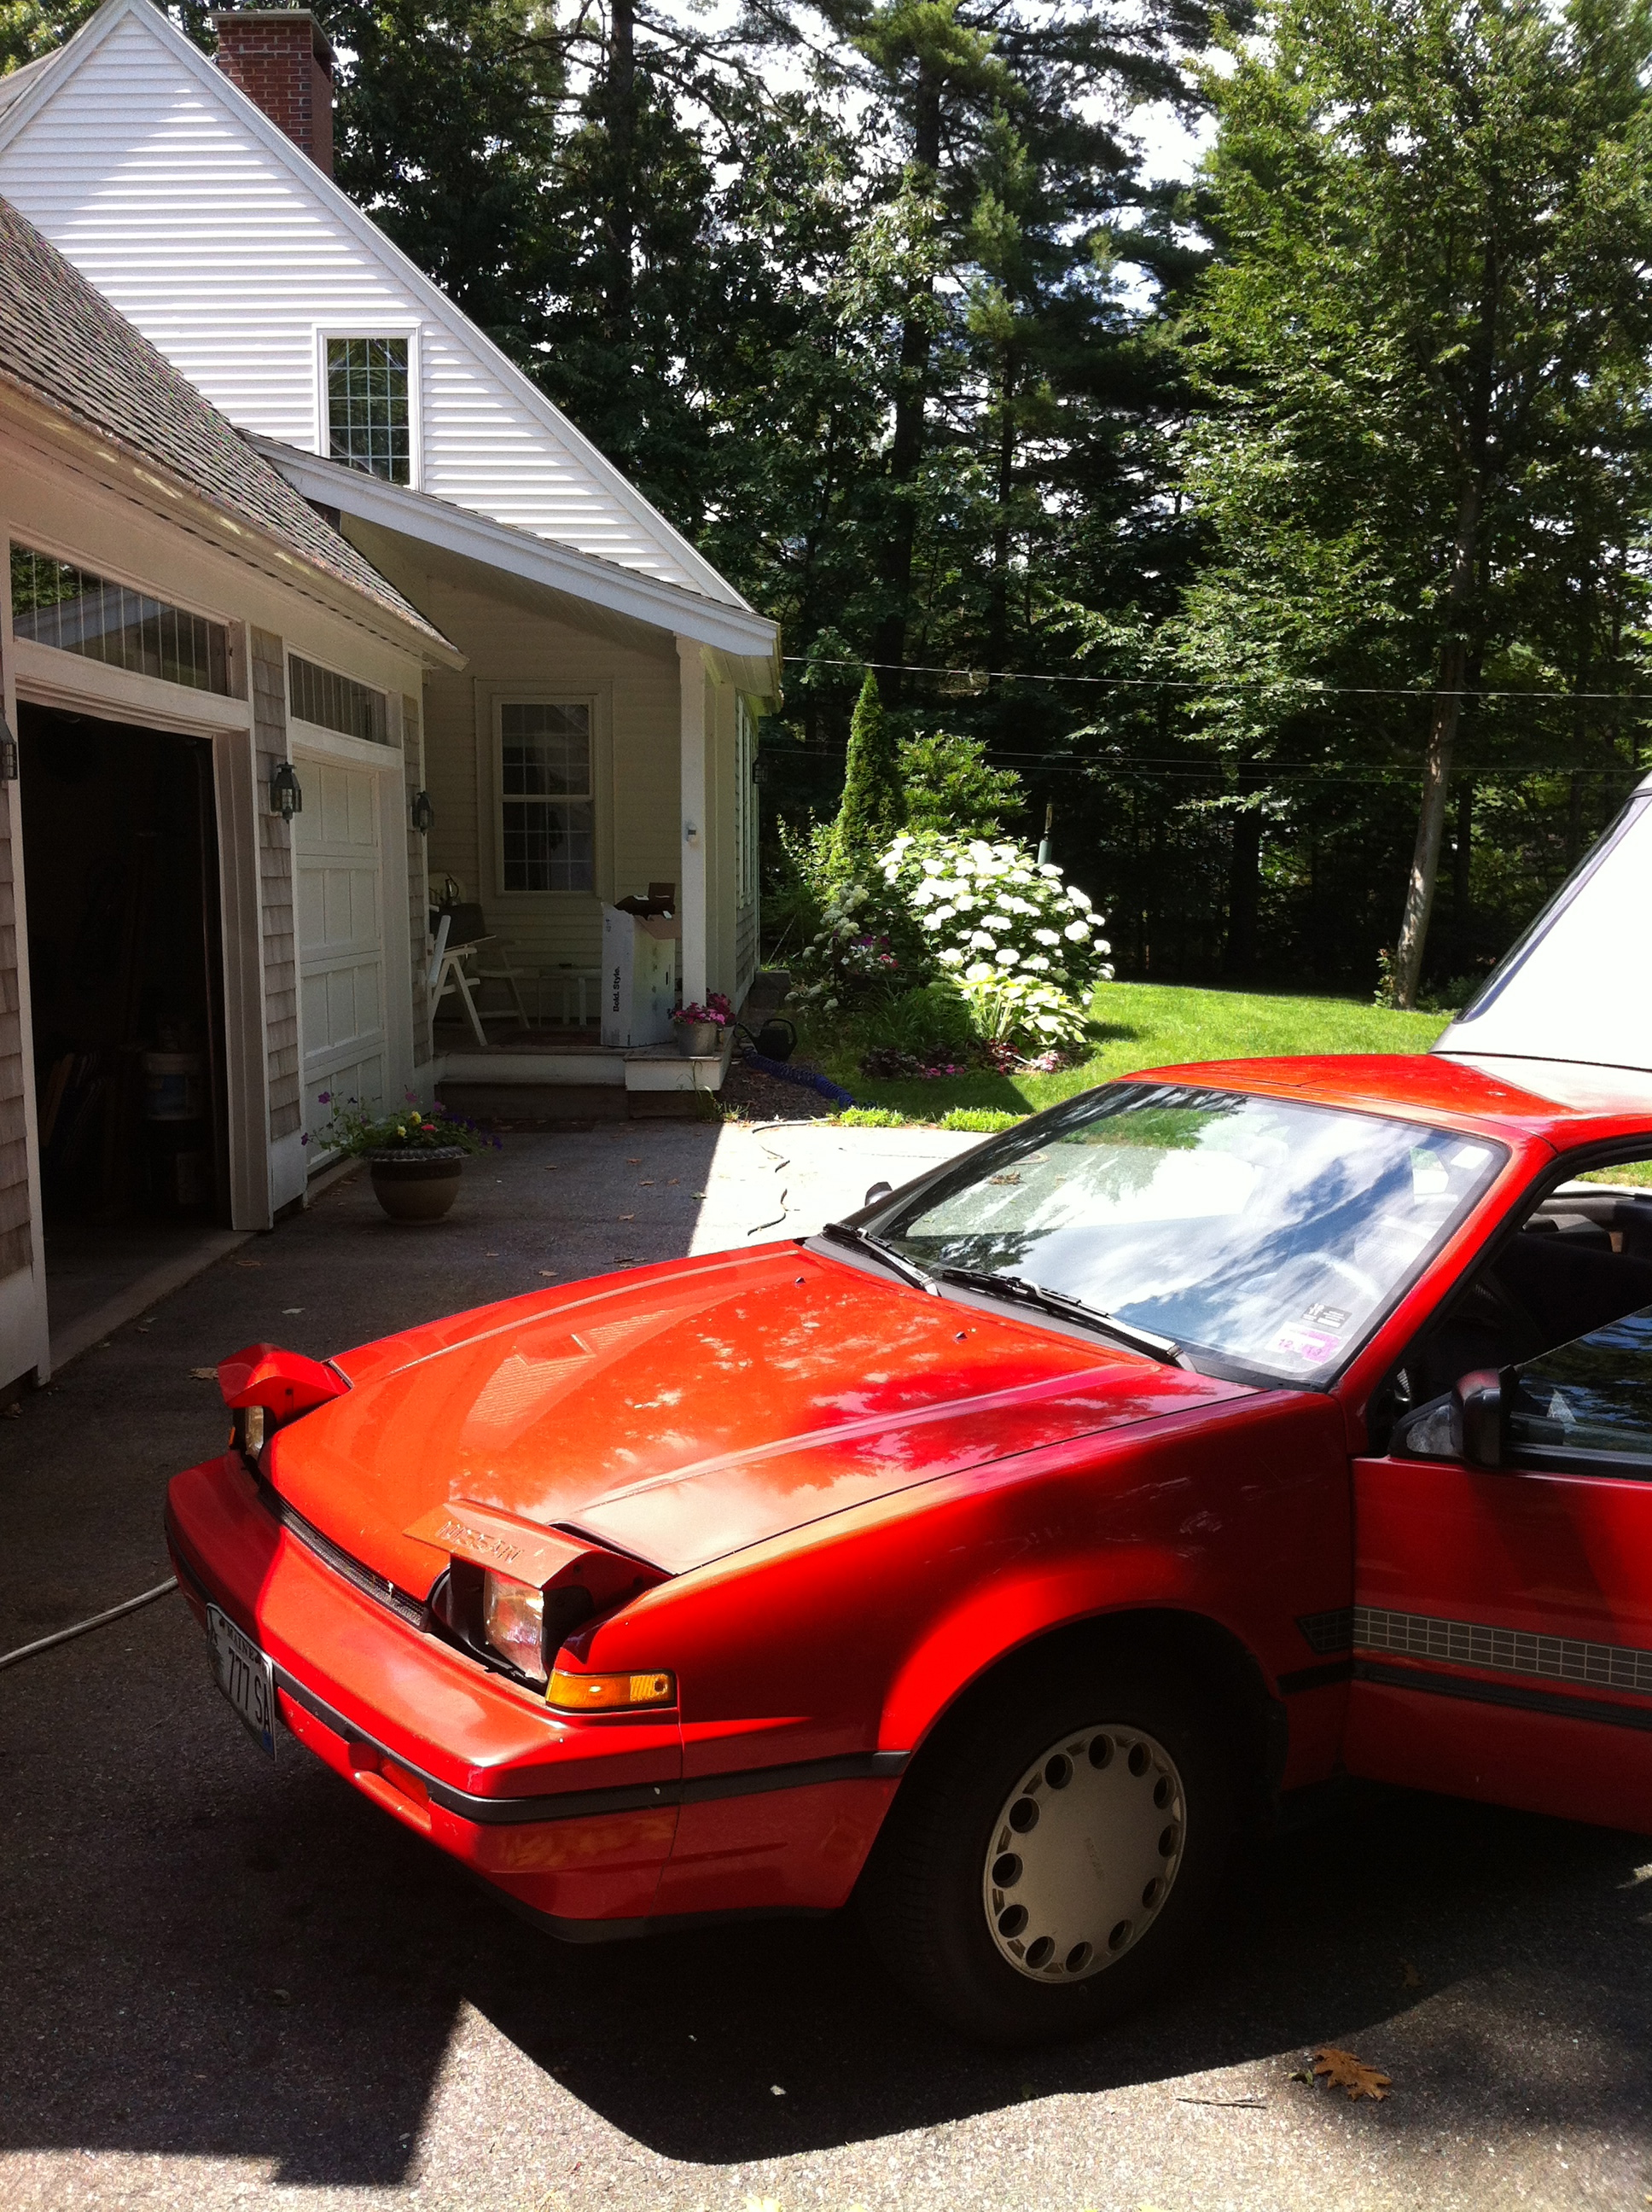 for sale 3000 obo mint 1988 nissan pulsar nx with a sportsback sell and trade. Black Bedroom Furniture Sets. Home Design Ideas